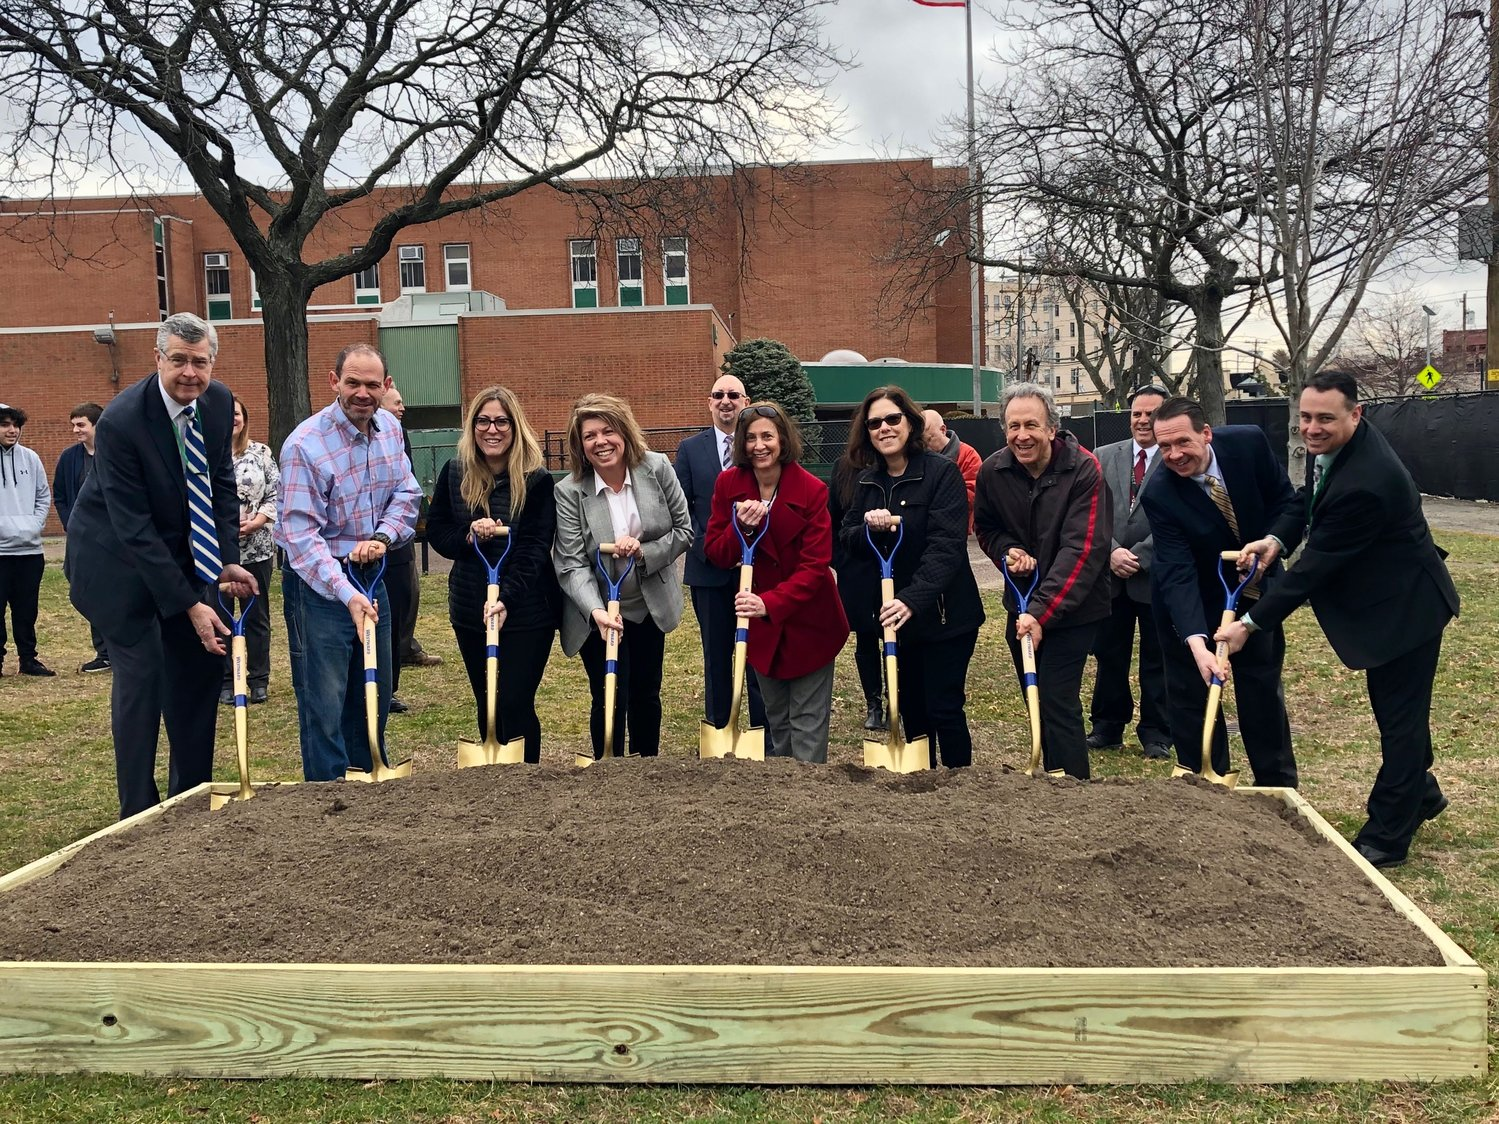 Lynbrook school officials dug in at the groundbreaking for a 33,274-square-foot extension of the high school on March 12. The project was part of a $28.9 million bond proposal that voters approved in October 2017.